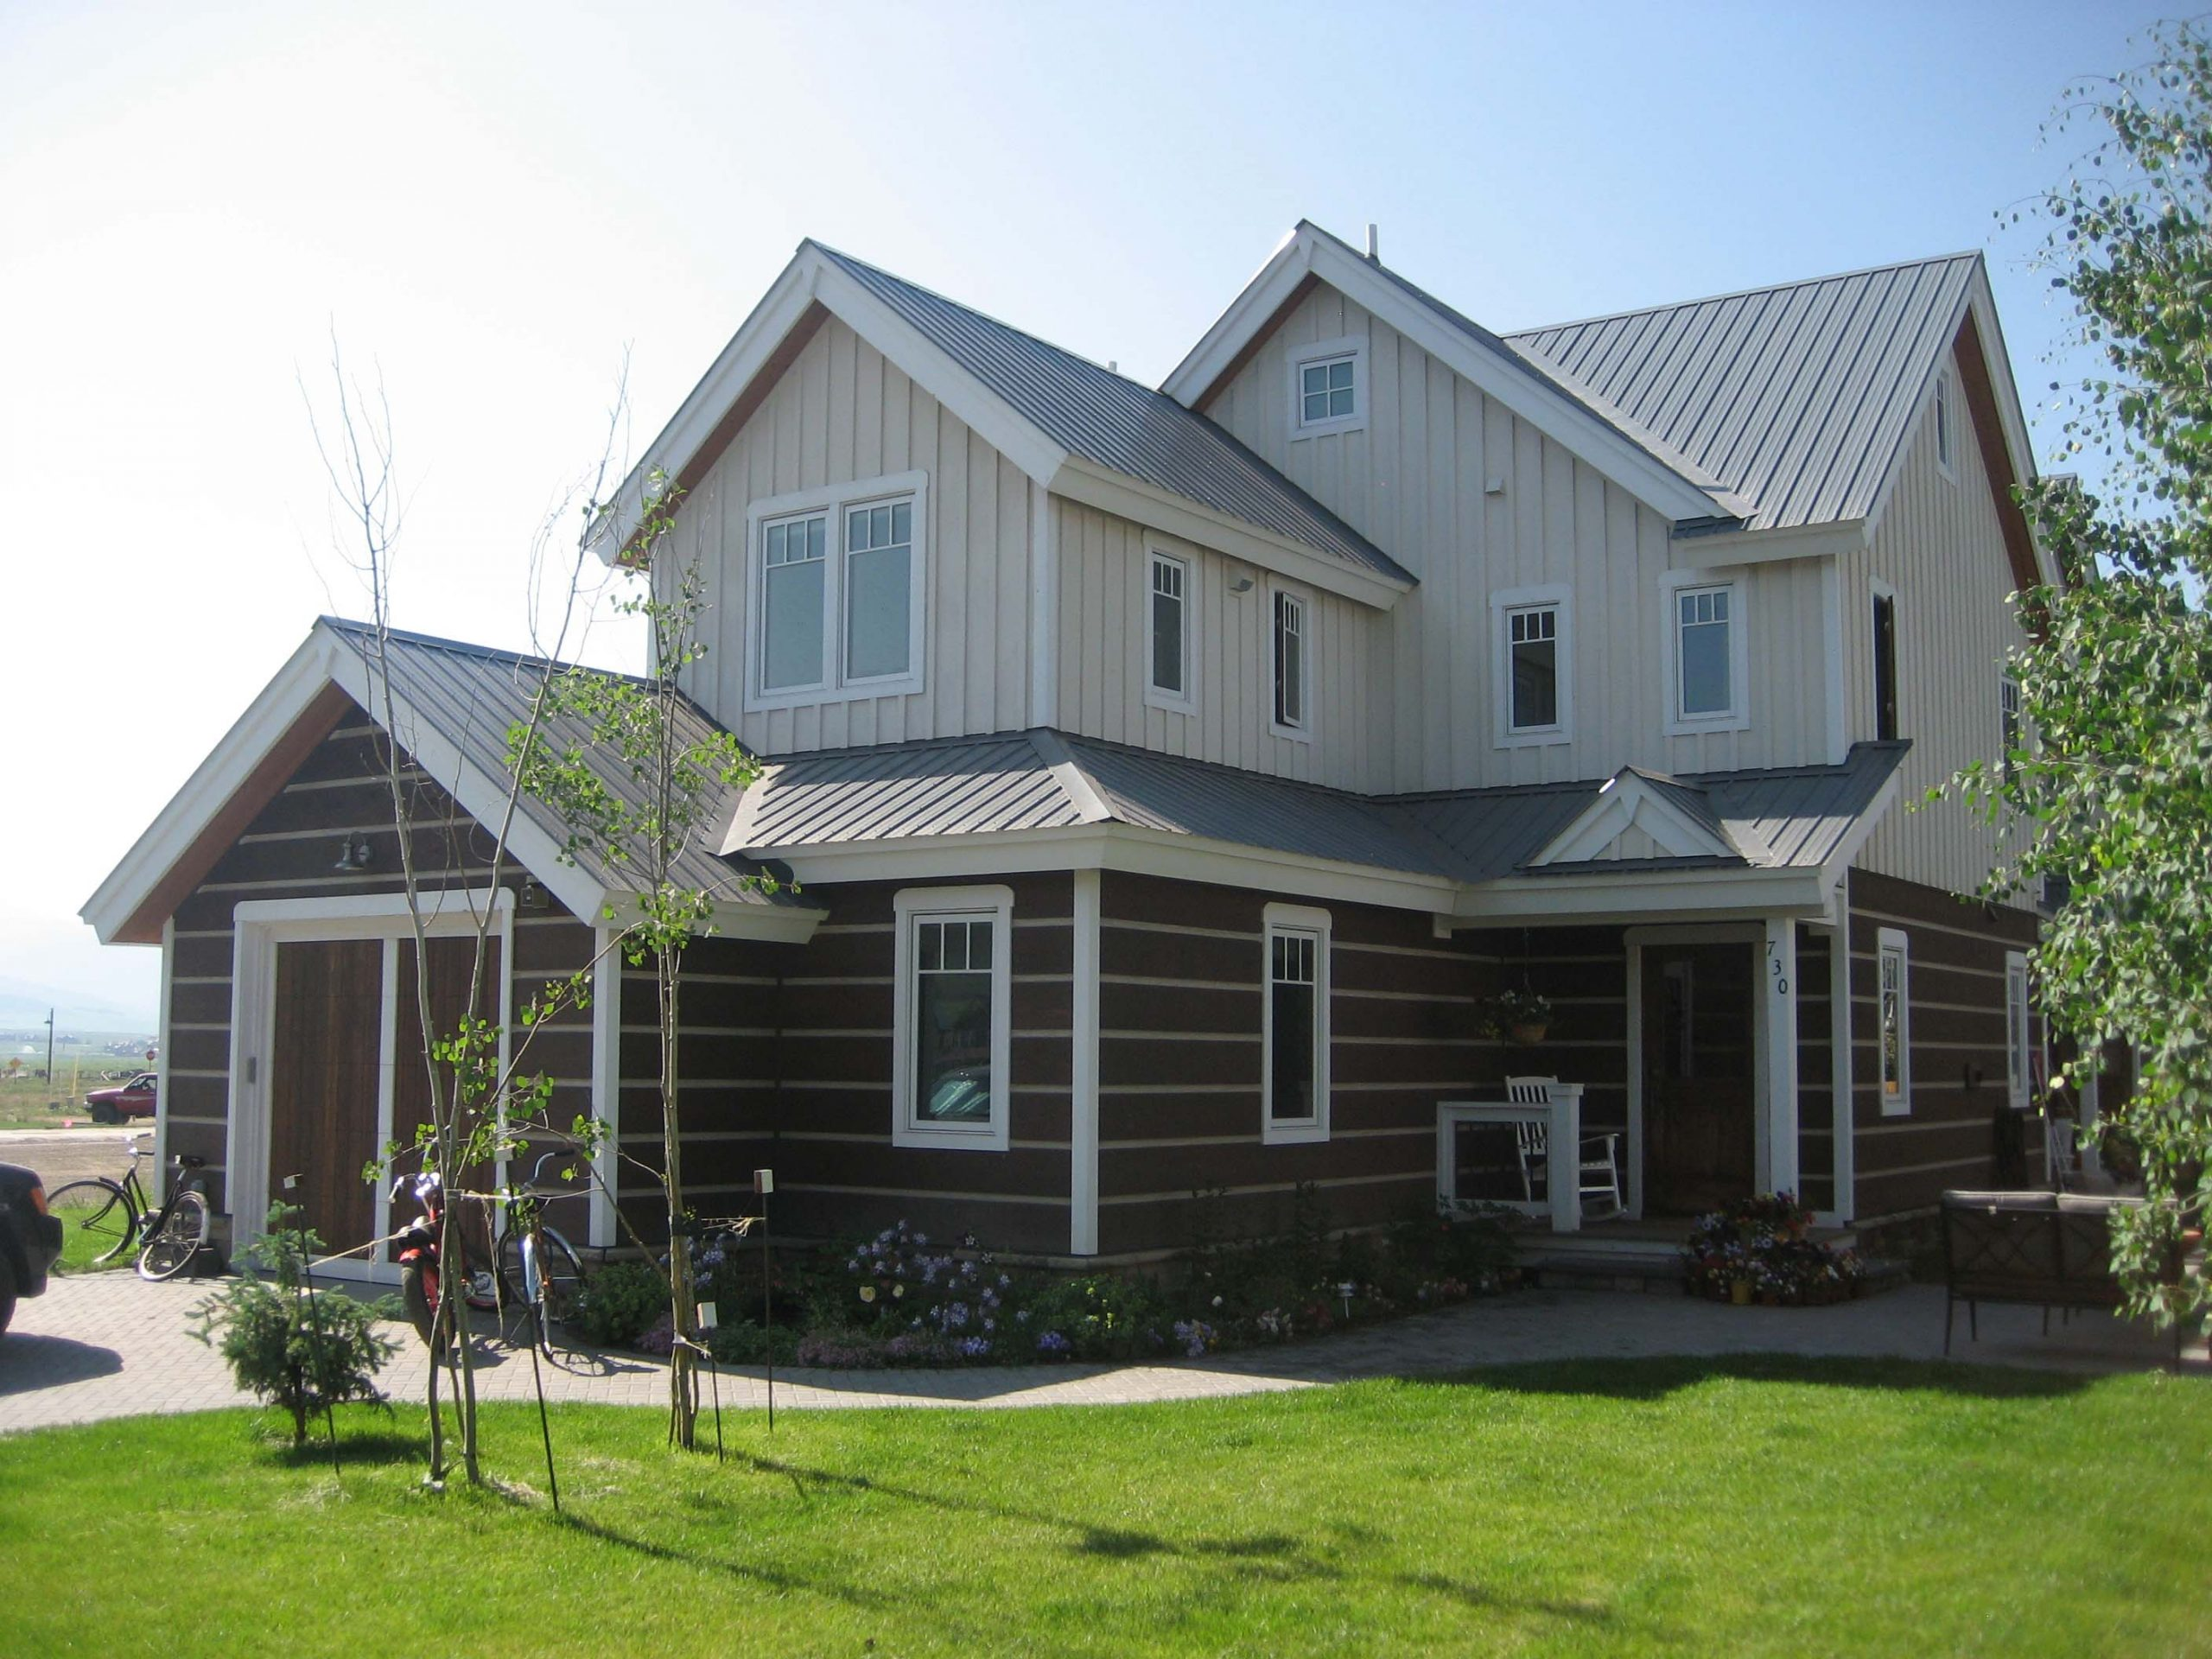 Barney Home building in Crested Butte